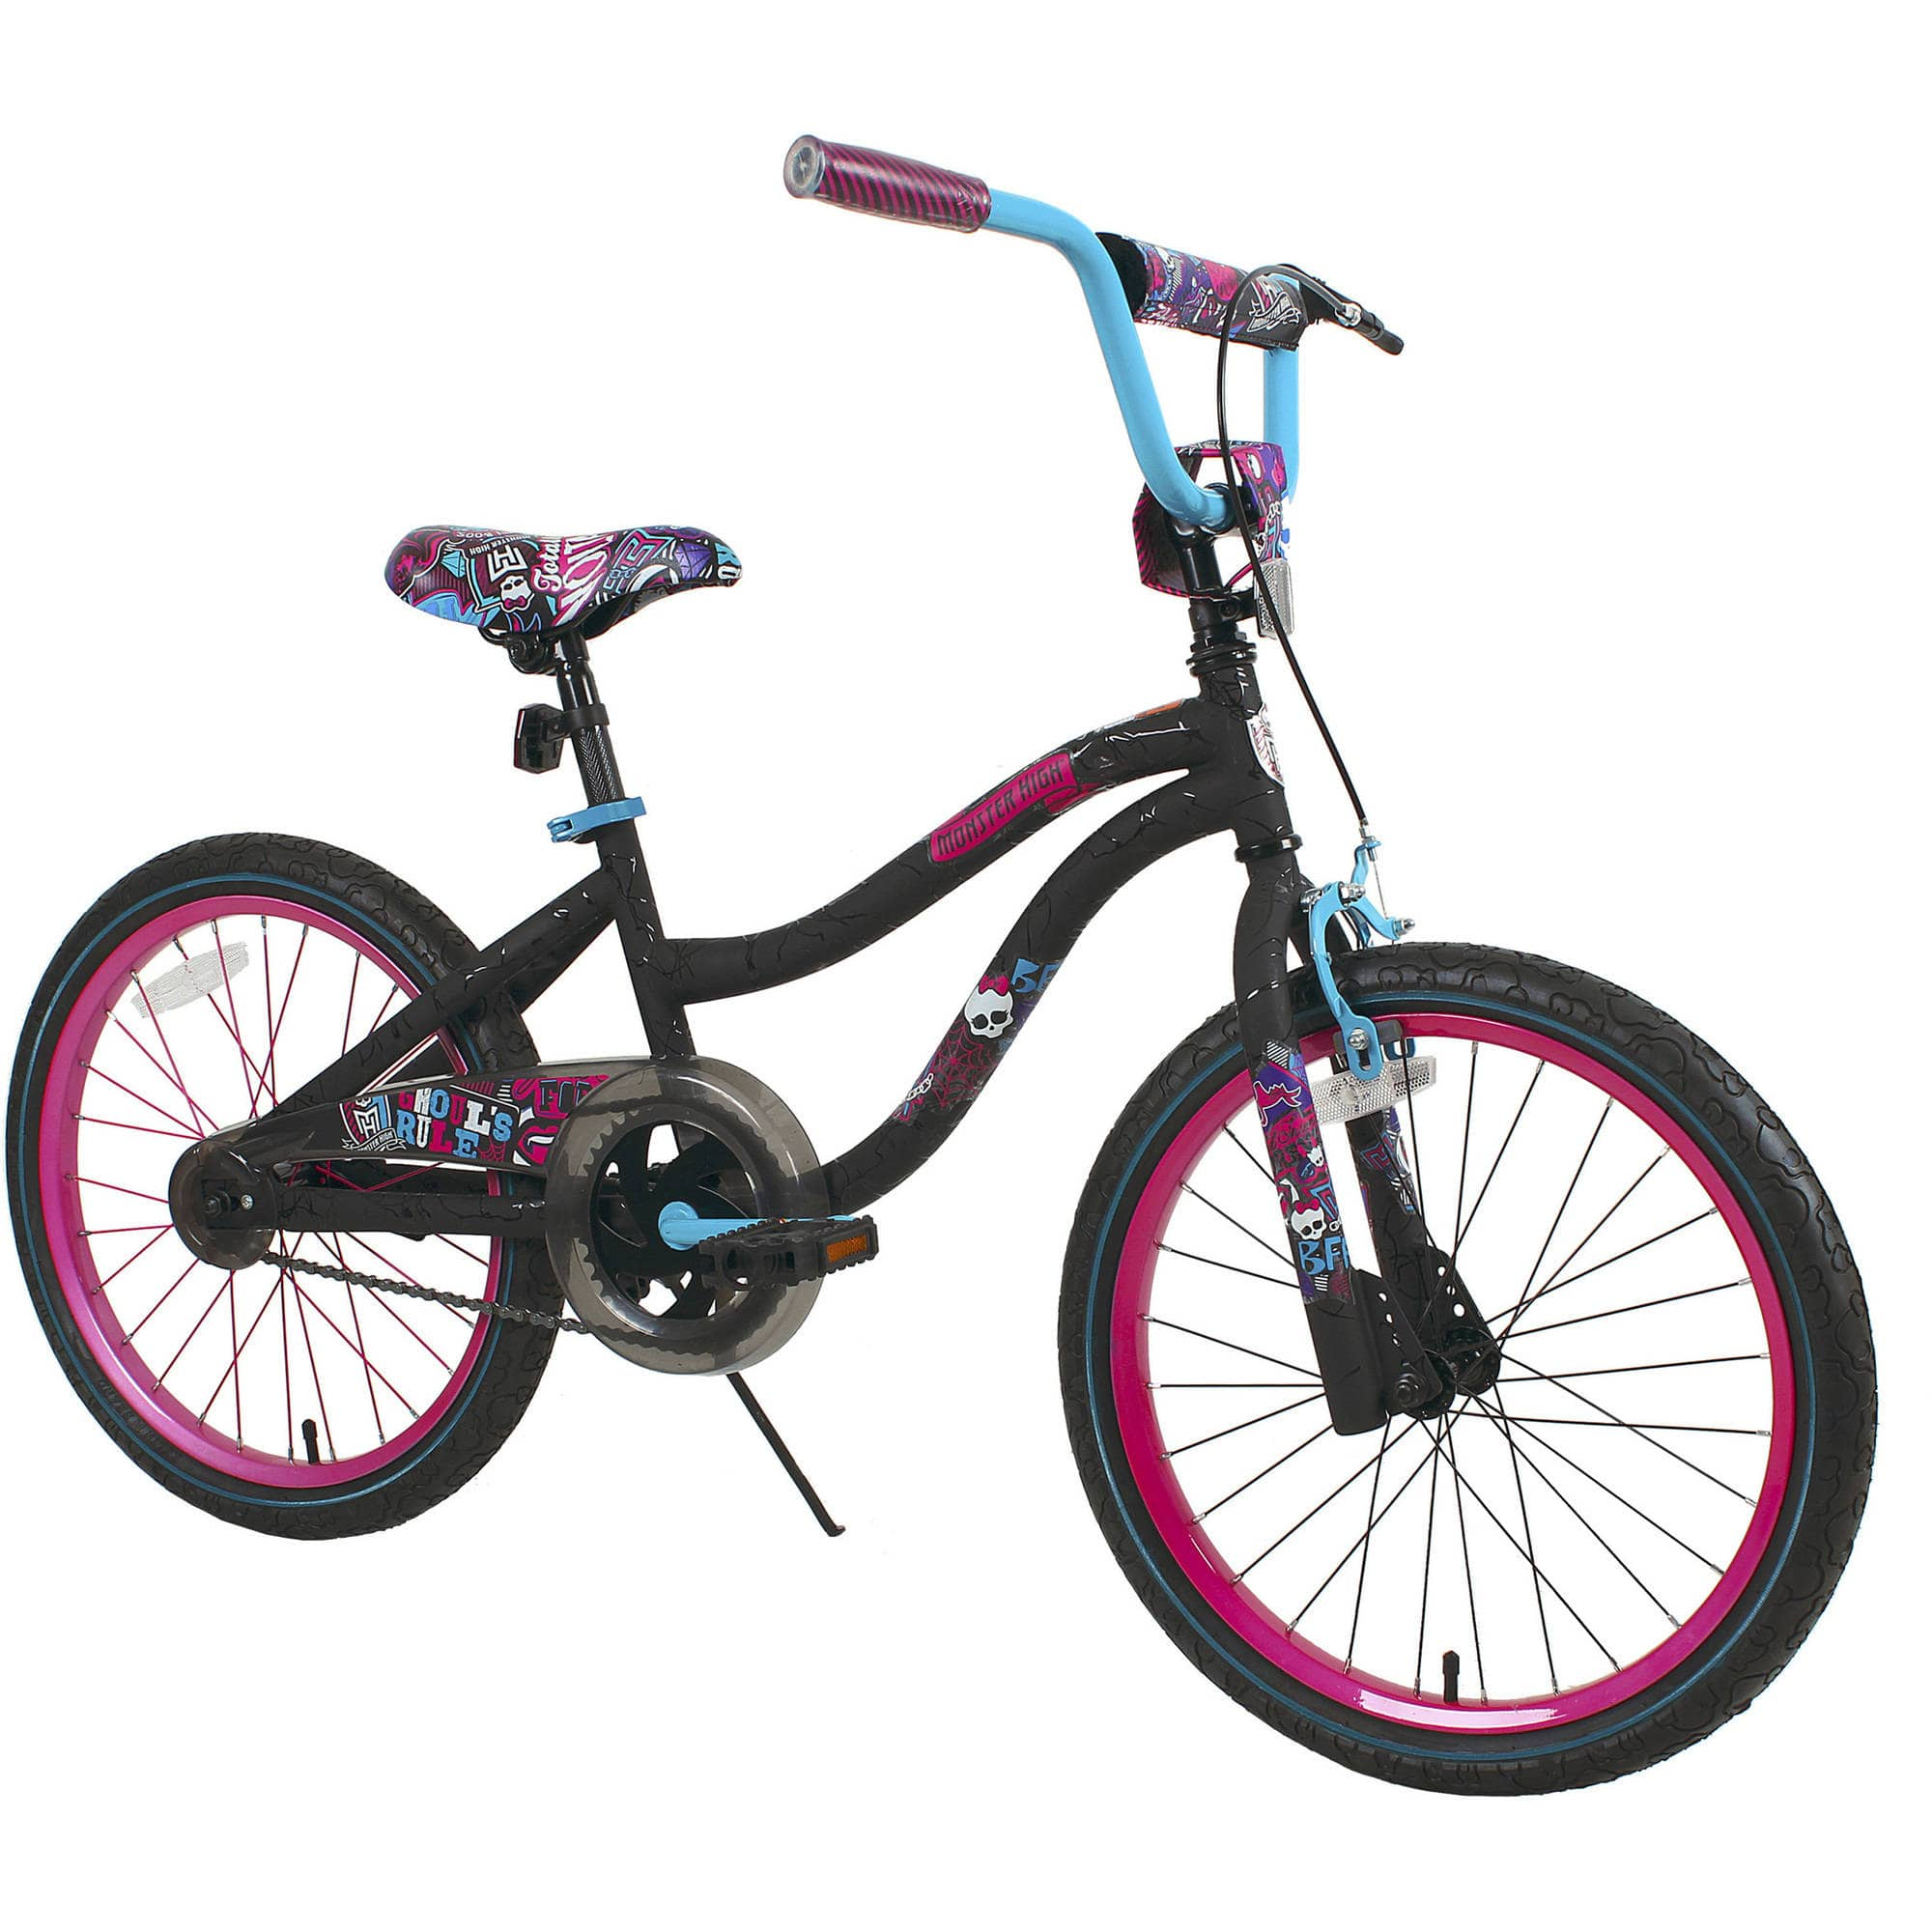 "20"" Monster High Girls' Bike $50 + Free Shipping or Store Pickup!"